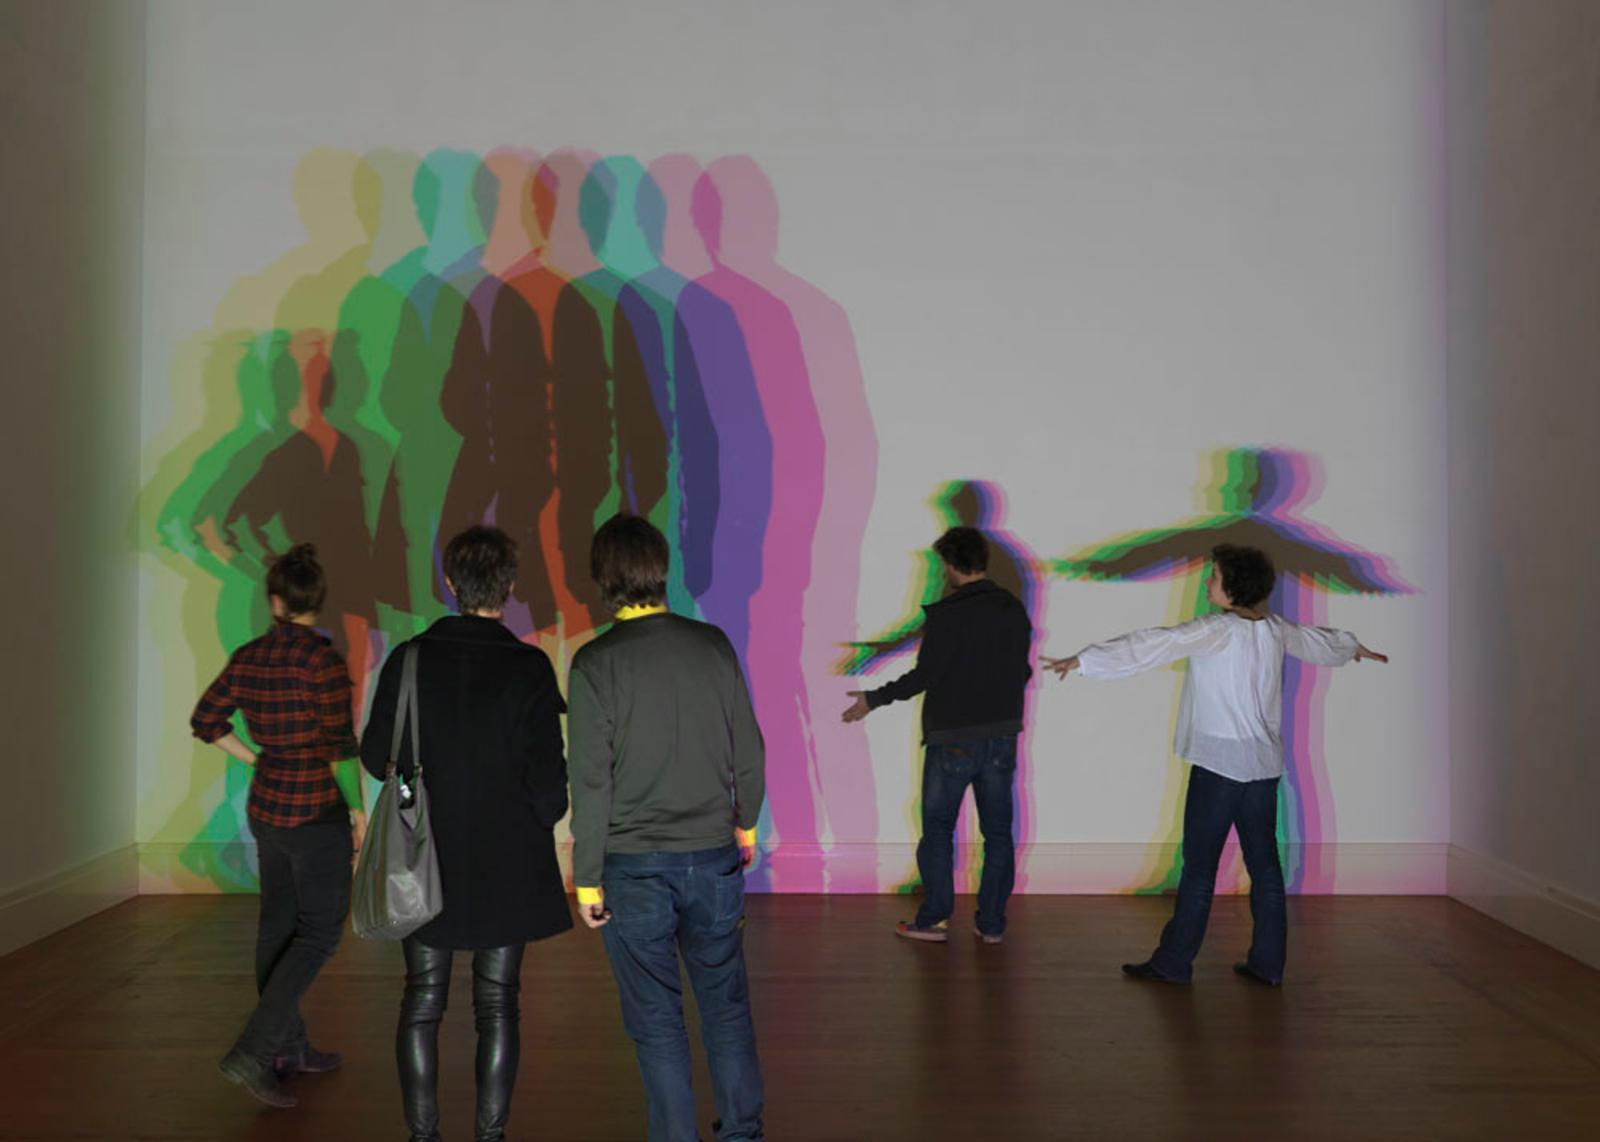 Your uncertain shadow – Olafur Eliasson